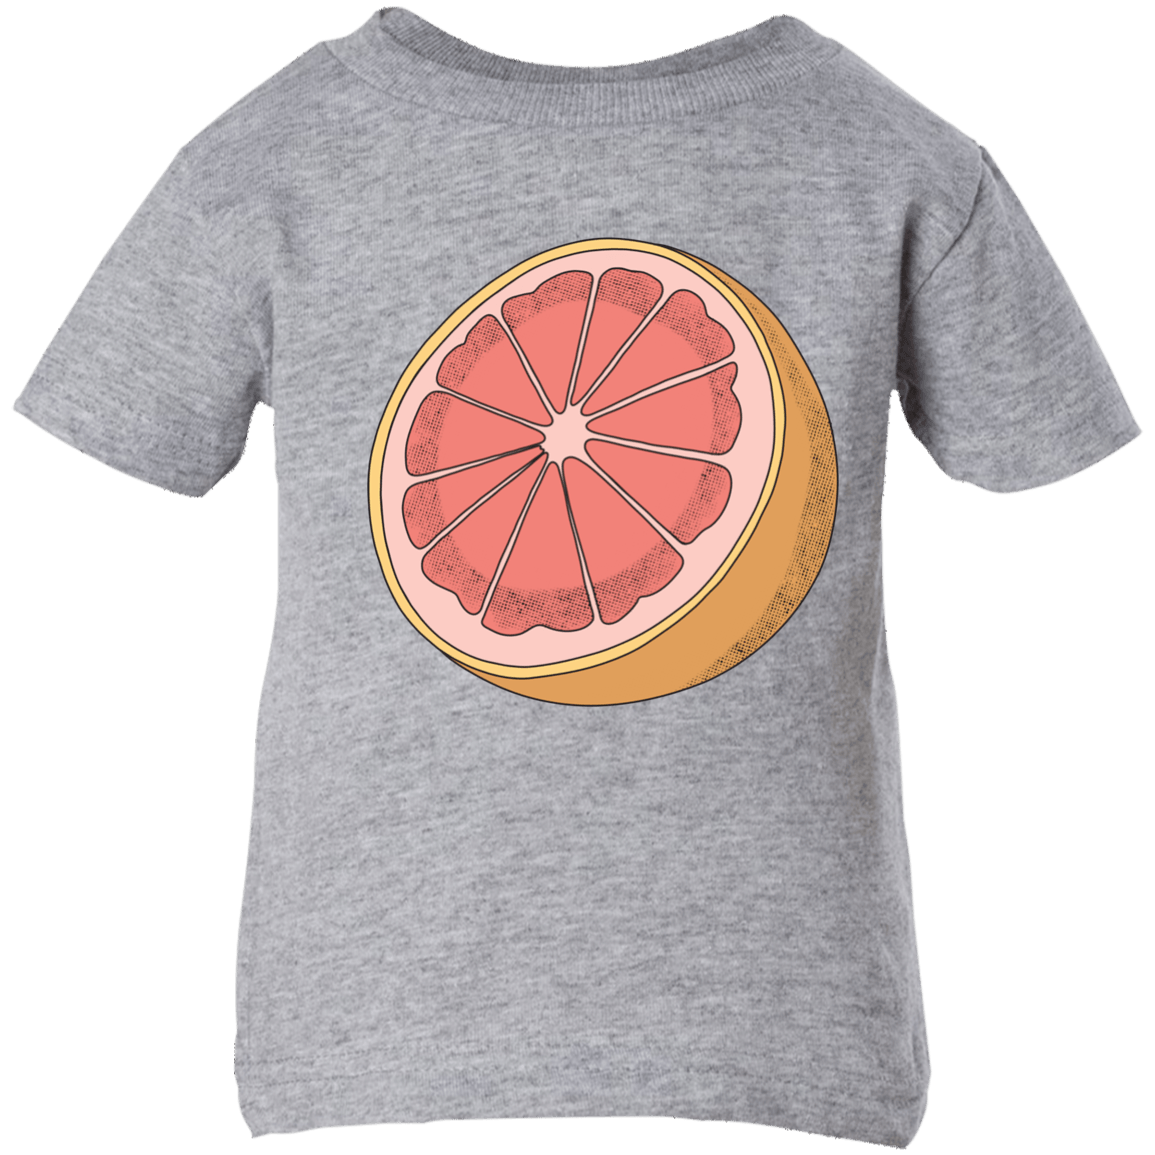 Grapefruit Infant Short Sleeve T-Shirt